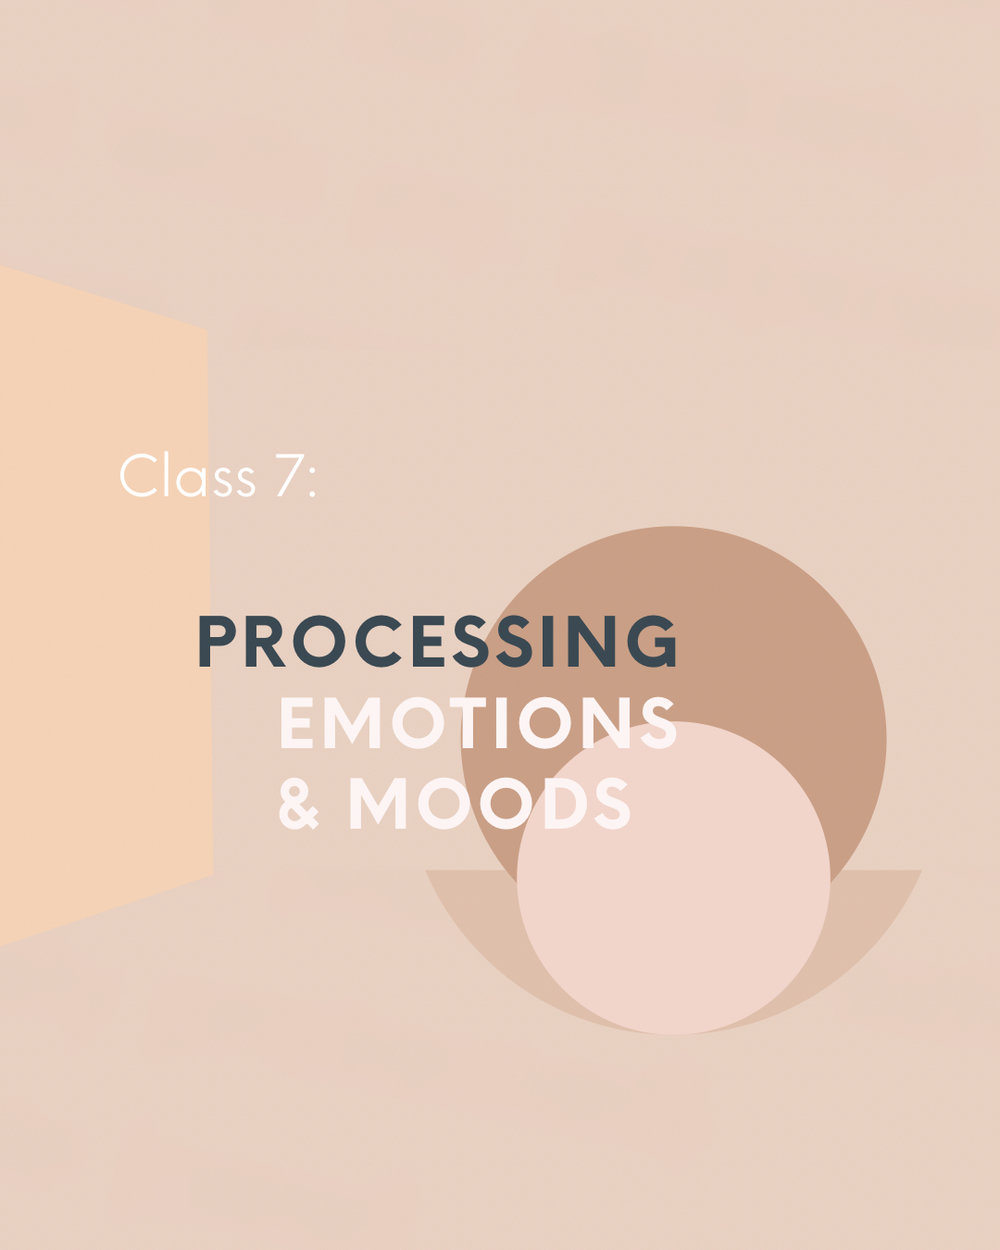 Processing Emotions & Moods - Emotions are teachers and guides.This class is about empowering you to (effectively) feel what you need to feel–and to (effectively) release all else, go beyond, and rise above.Learn the empowering art of processing your emotions and moods, this Saturday!$15